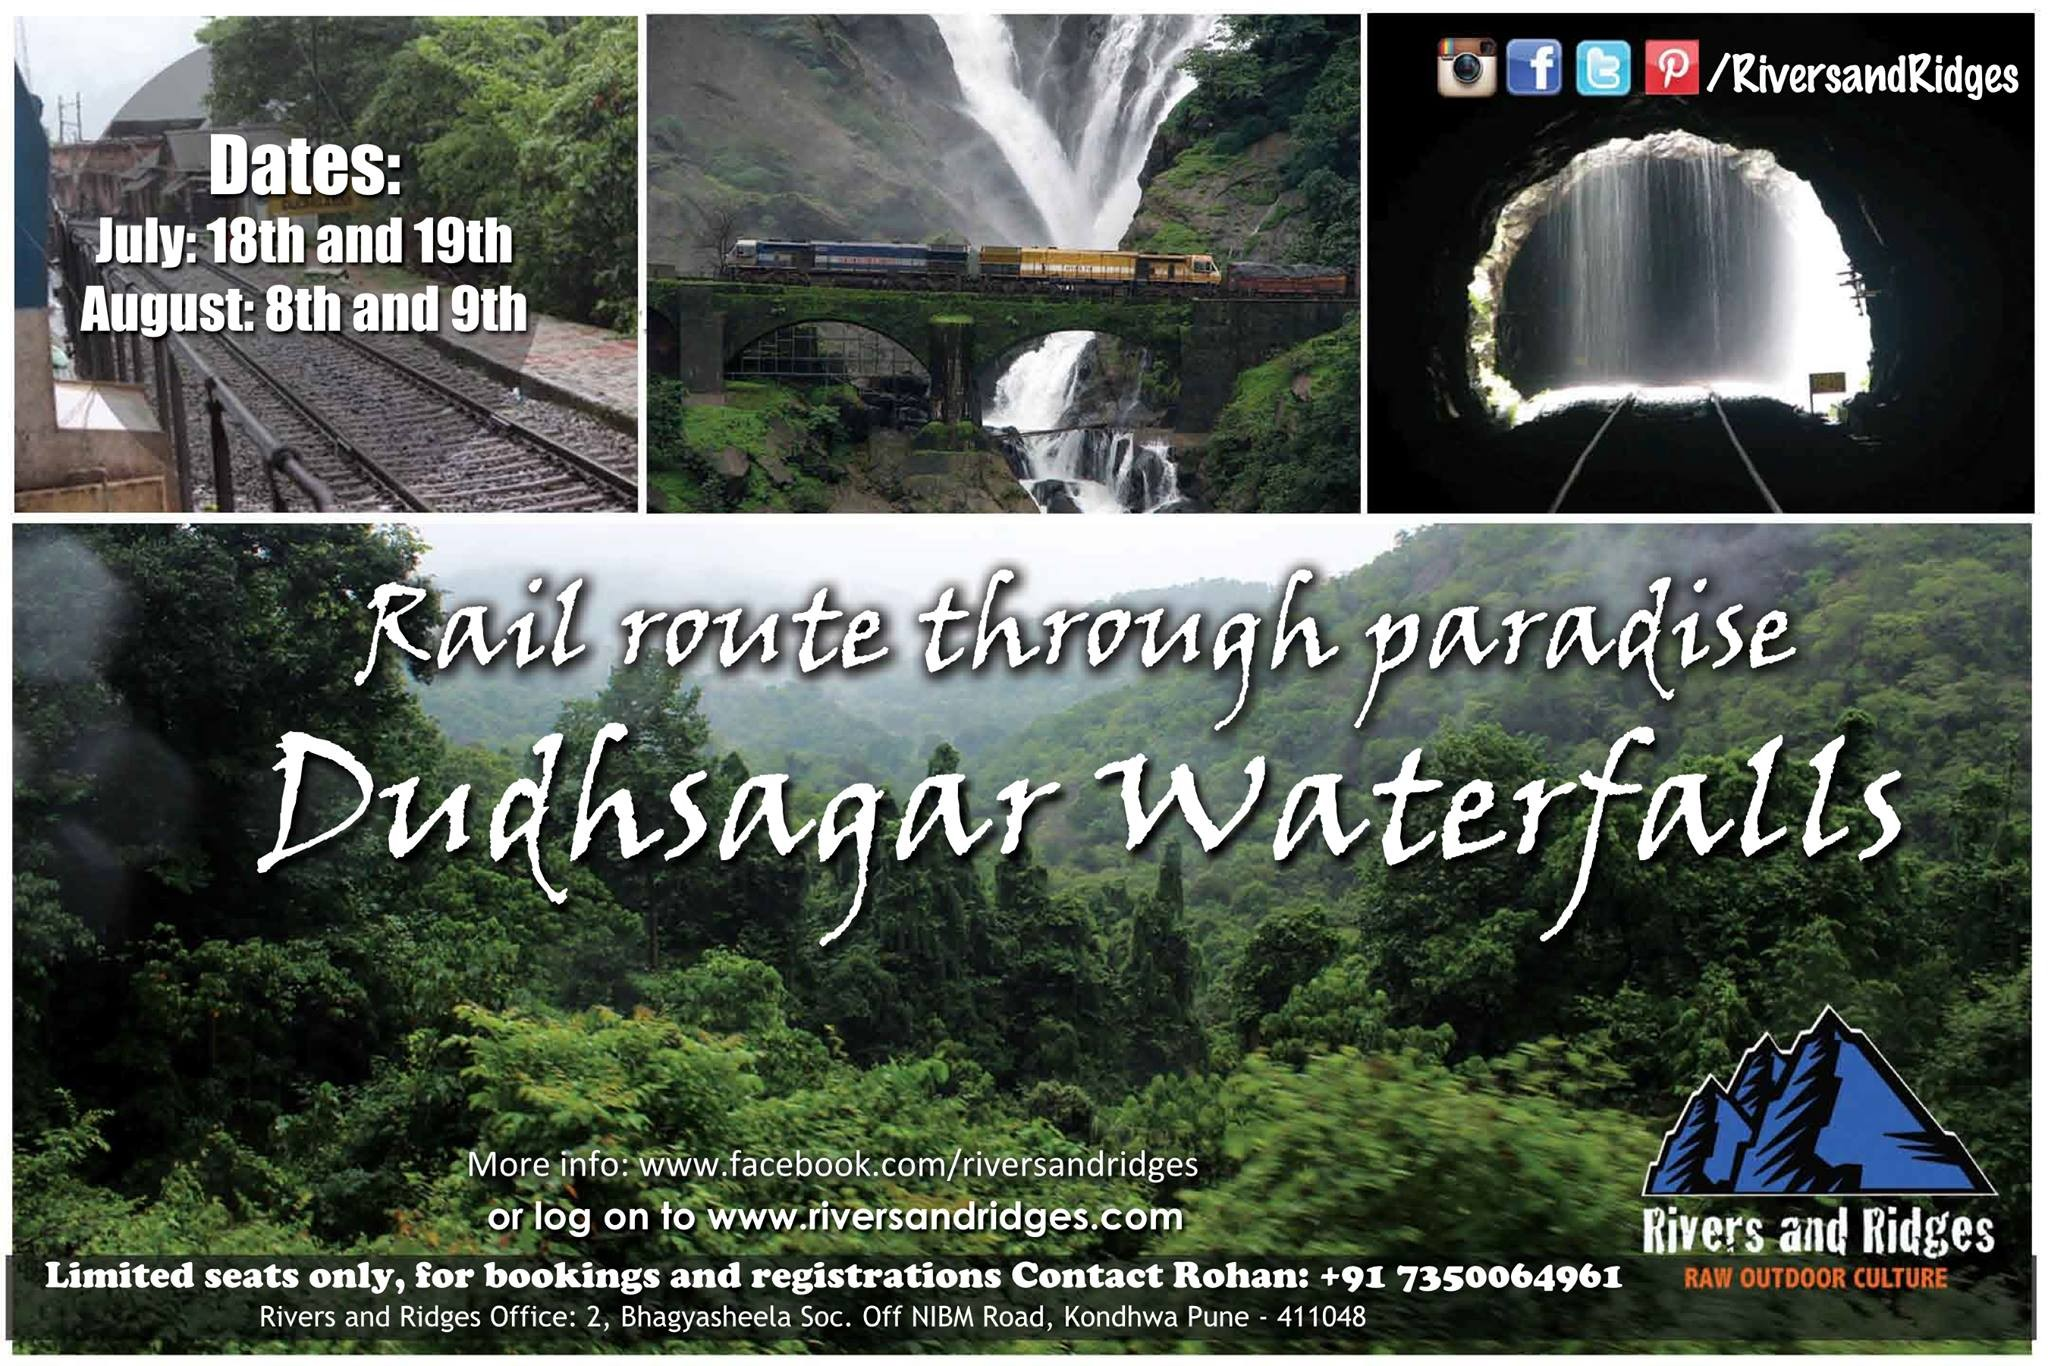 Paradise-like Experience at Dudhsagar Waterfalls with Rivers and Ridges